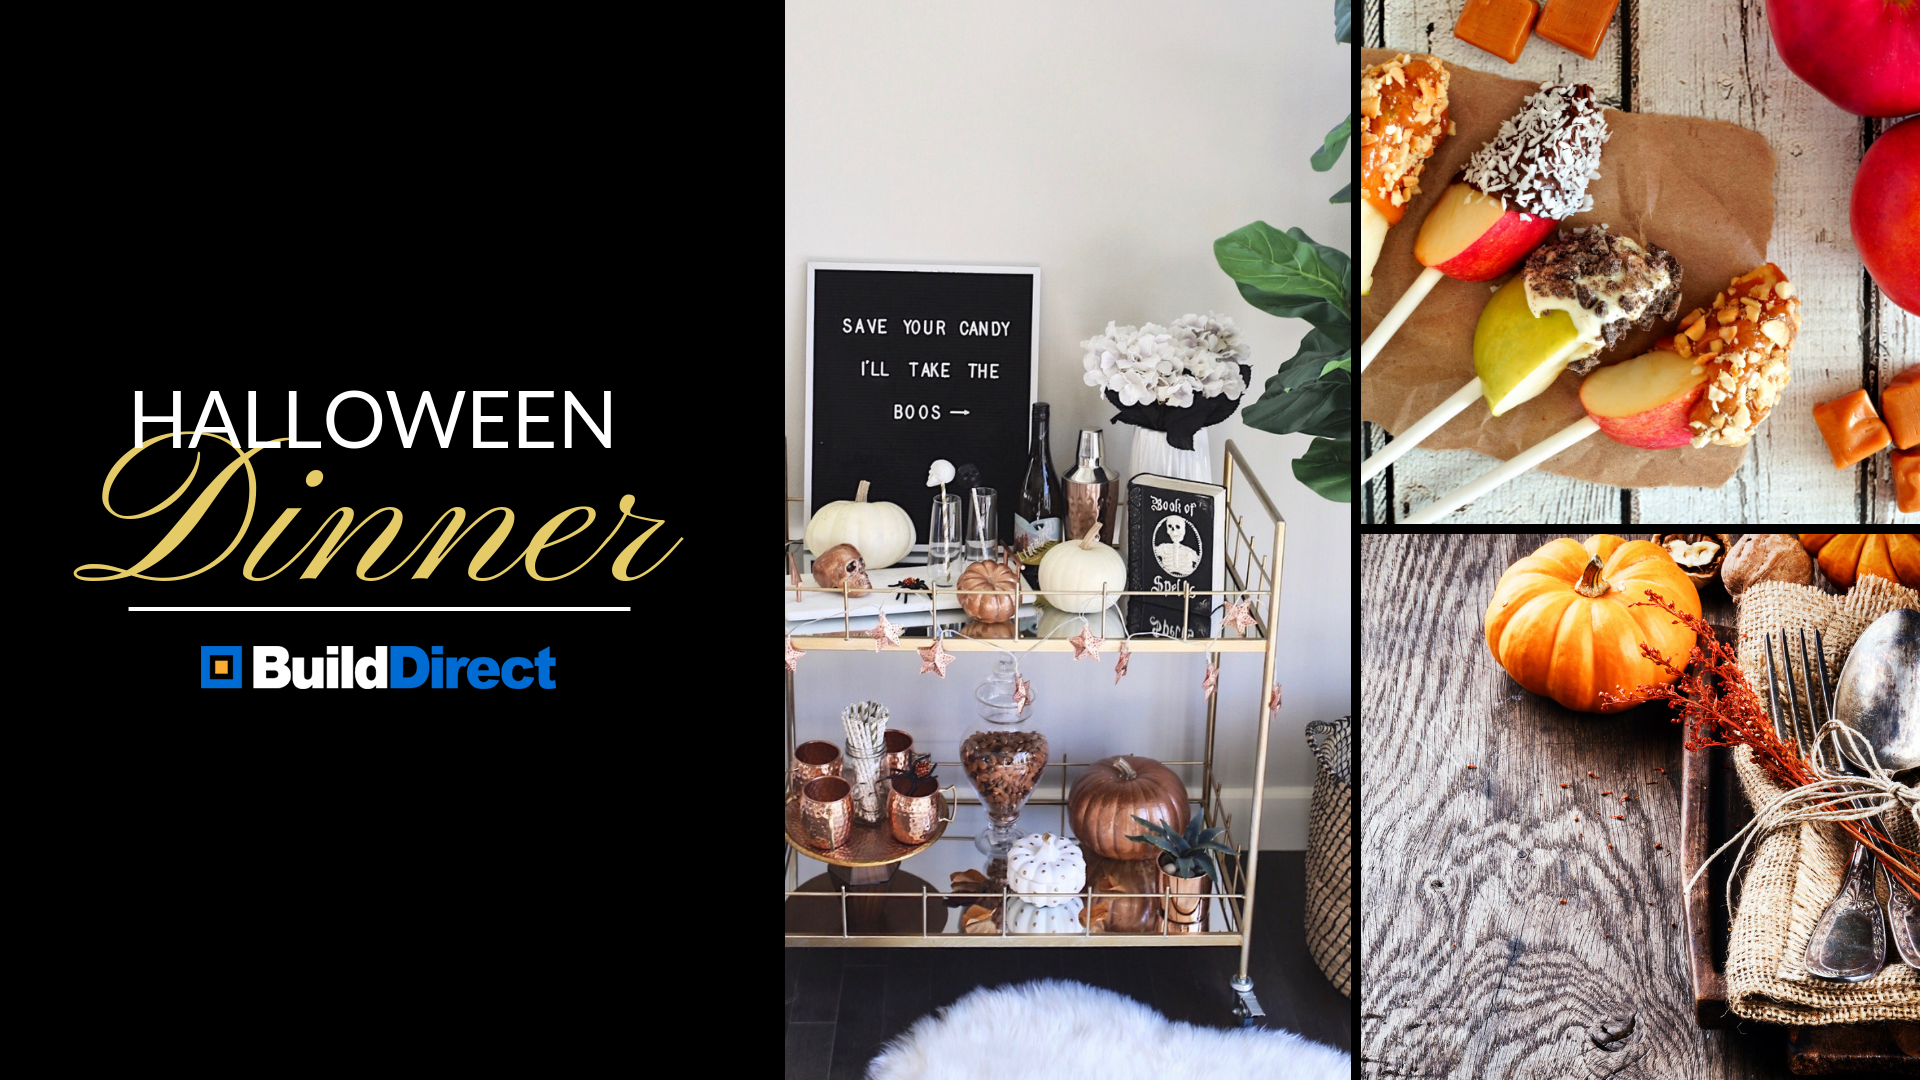 Halloween Dinner Party Ideas.Classy Halloween Dinner Party Ideas Builddirect Blog Life